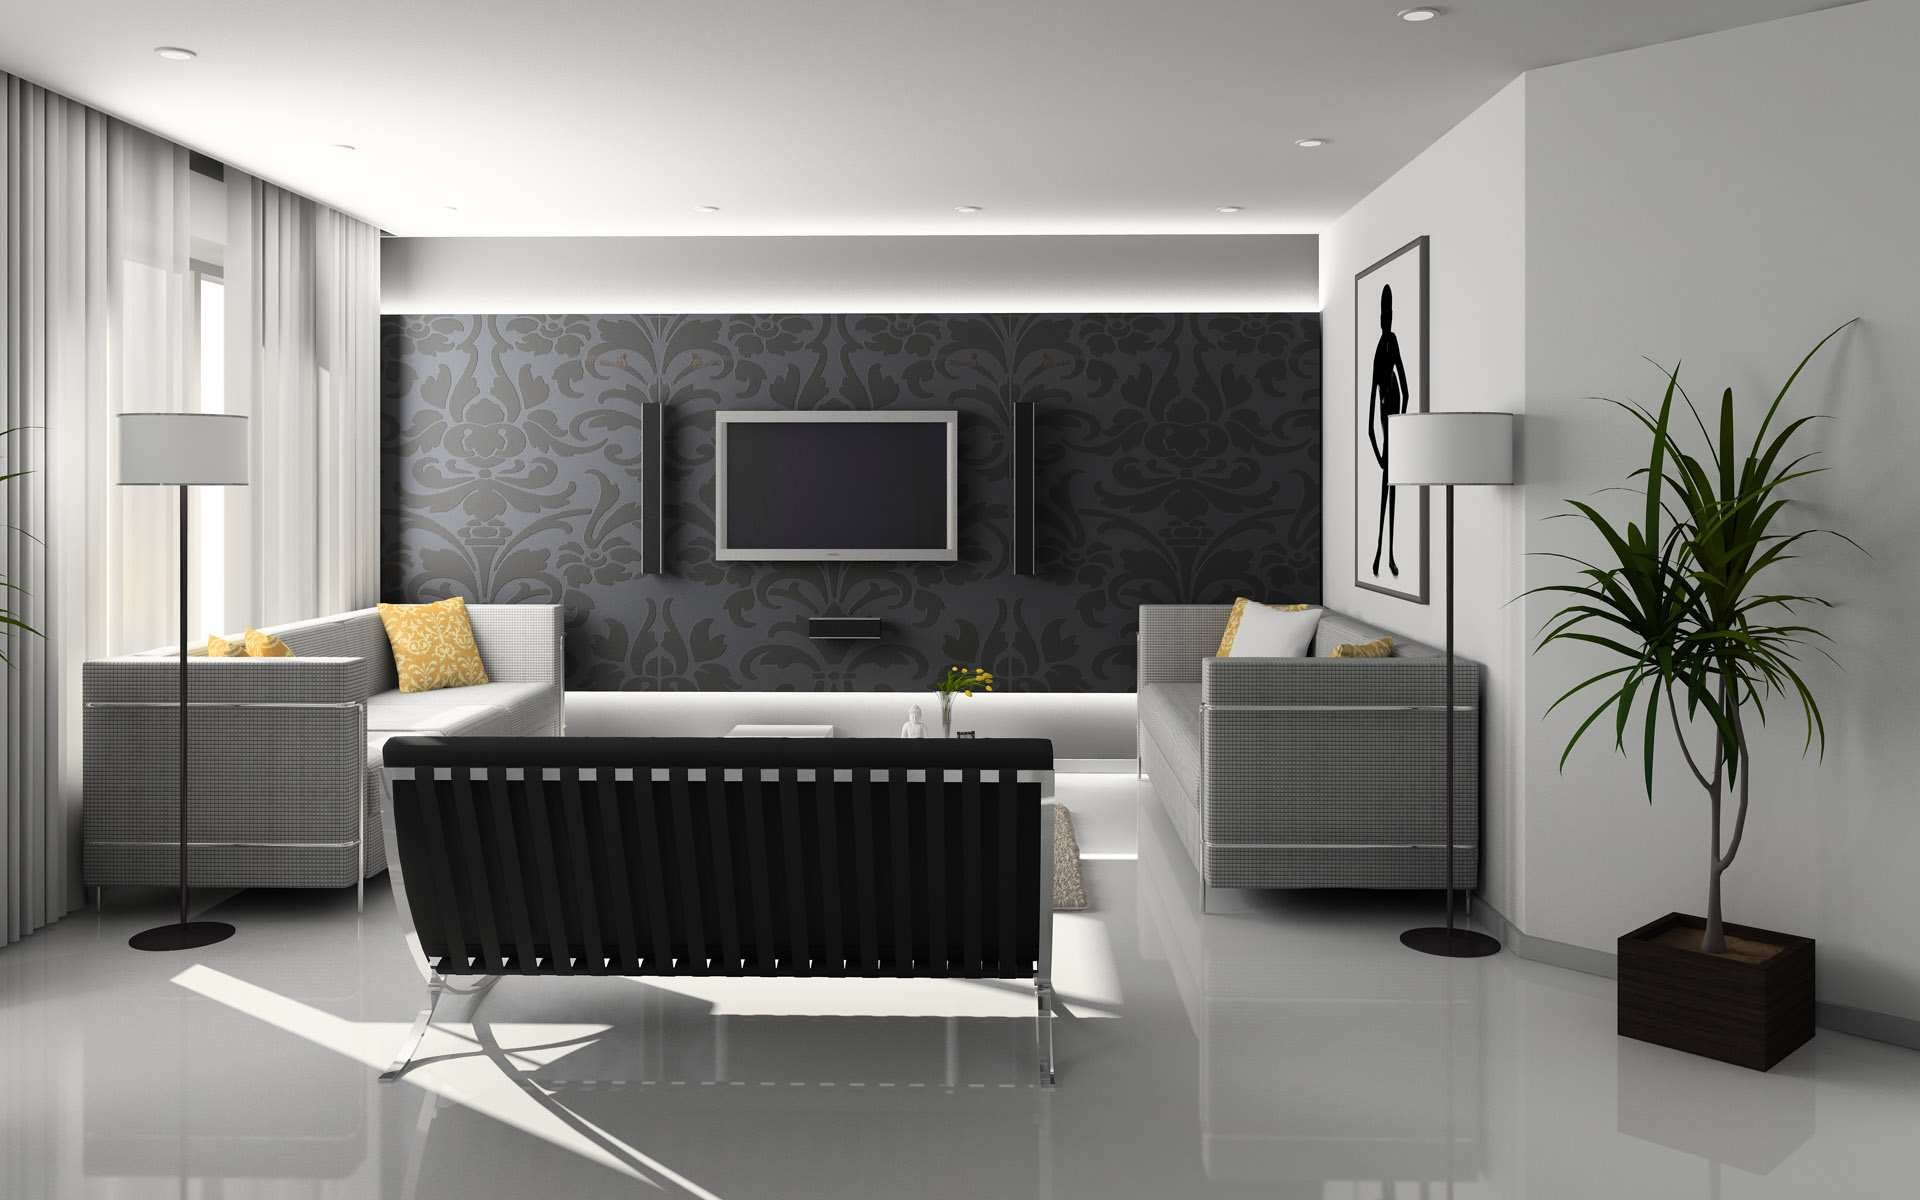 How to make your house look good with interior design